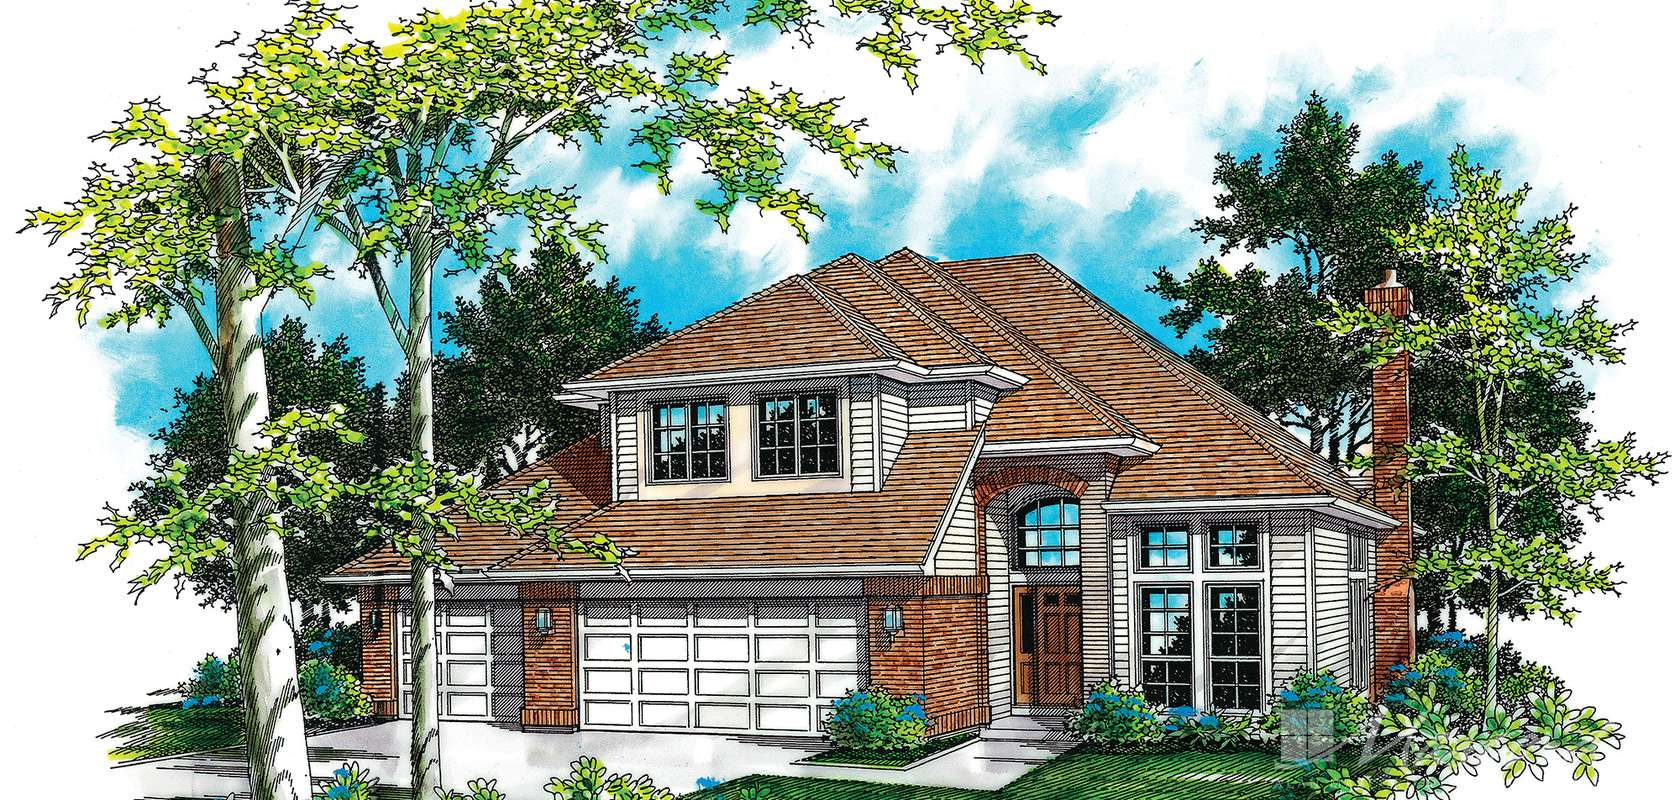 Mascord House Plan B2258B-3 Car: The Lotus